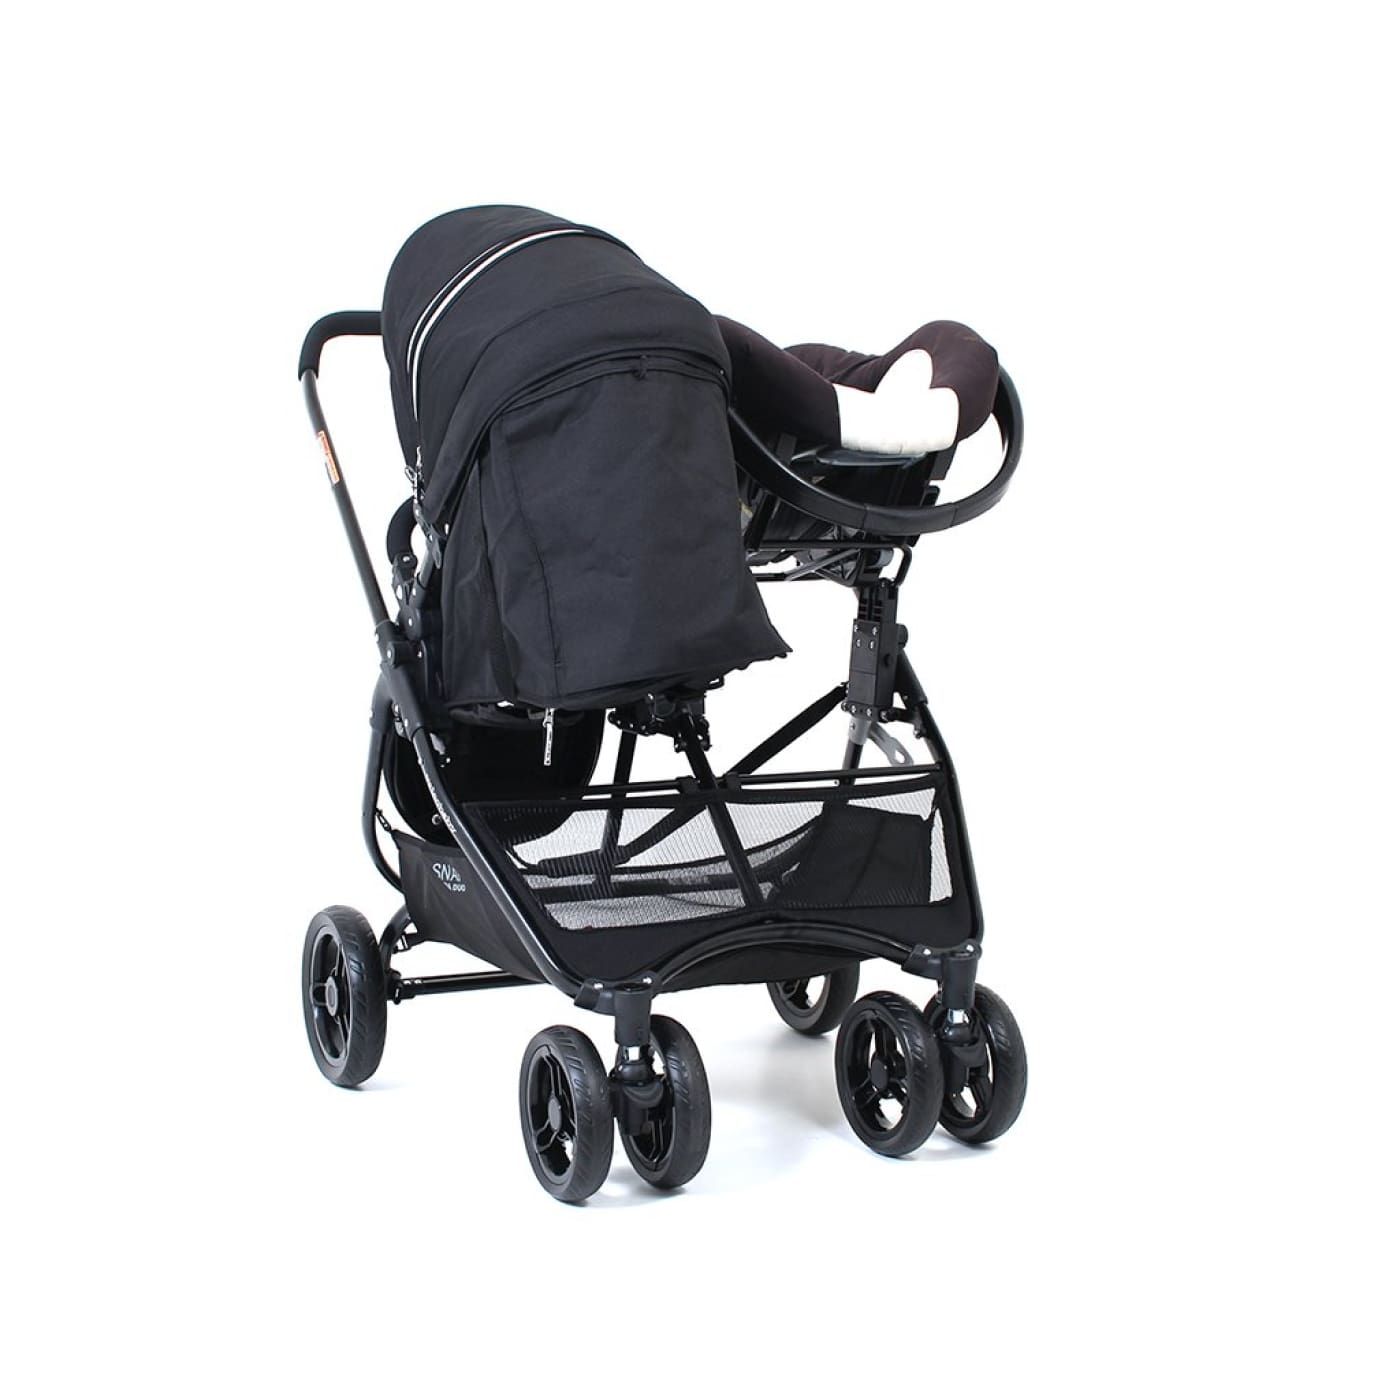 Valco Baby Adaptor B Secondary for Snap Ultra Duo (Britax/Maxi Cosi/Gemm) - PRAMS & STROLLERS - ADAPTORS FOR TRAV SYS